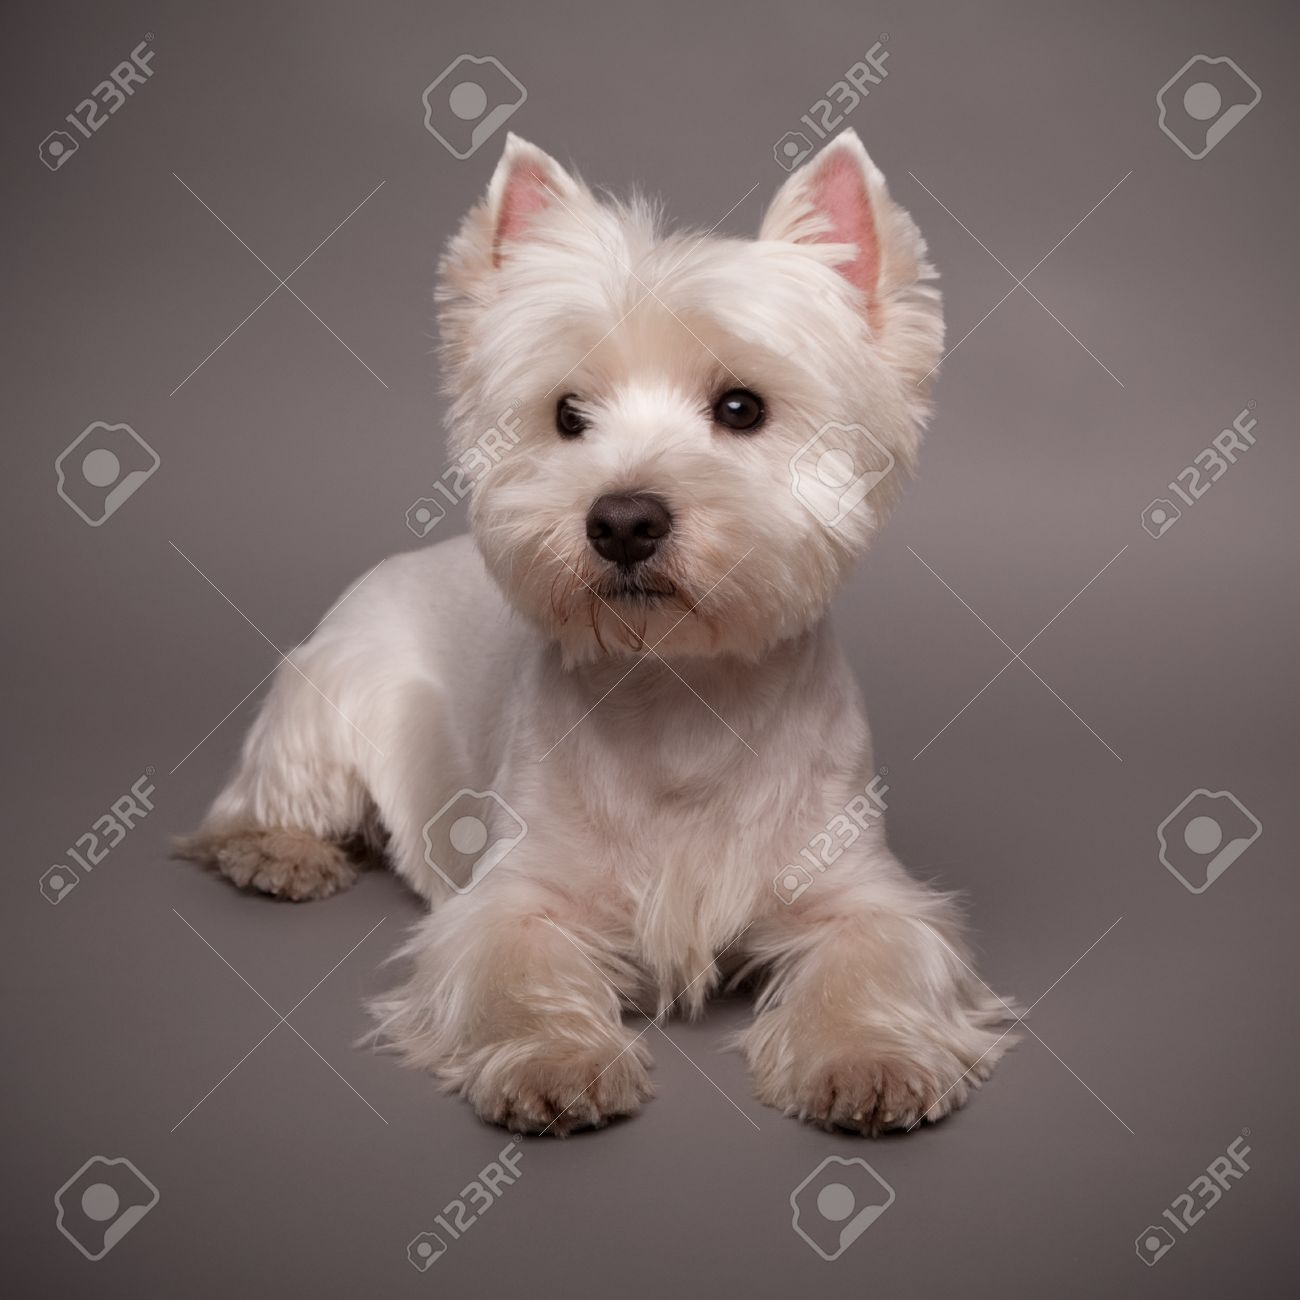 Adorable West Highland Terrier (Westie) on a gray background Stock Photo - 13348034